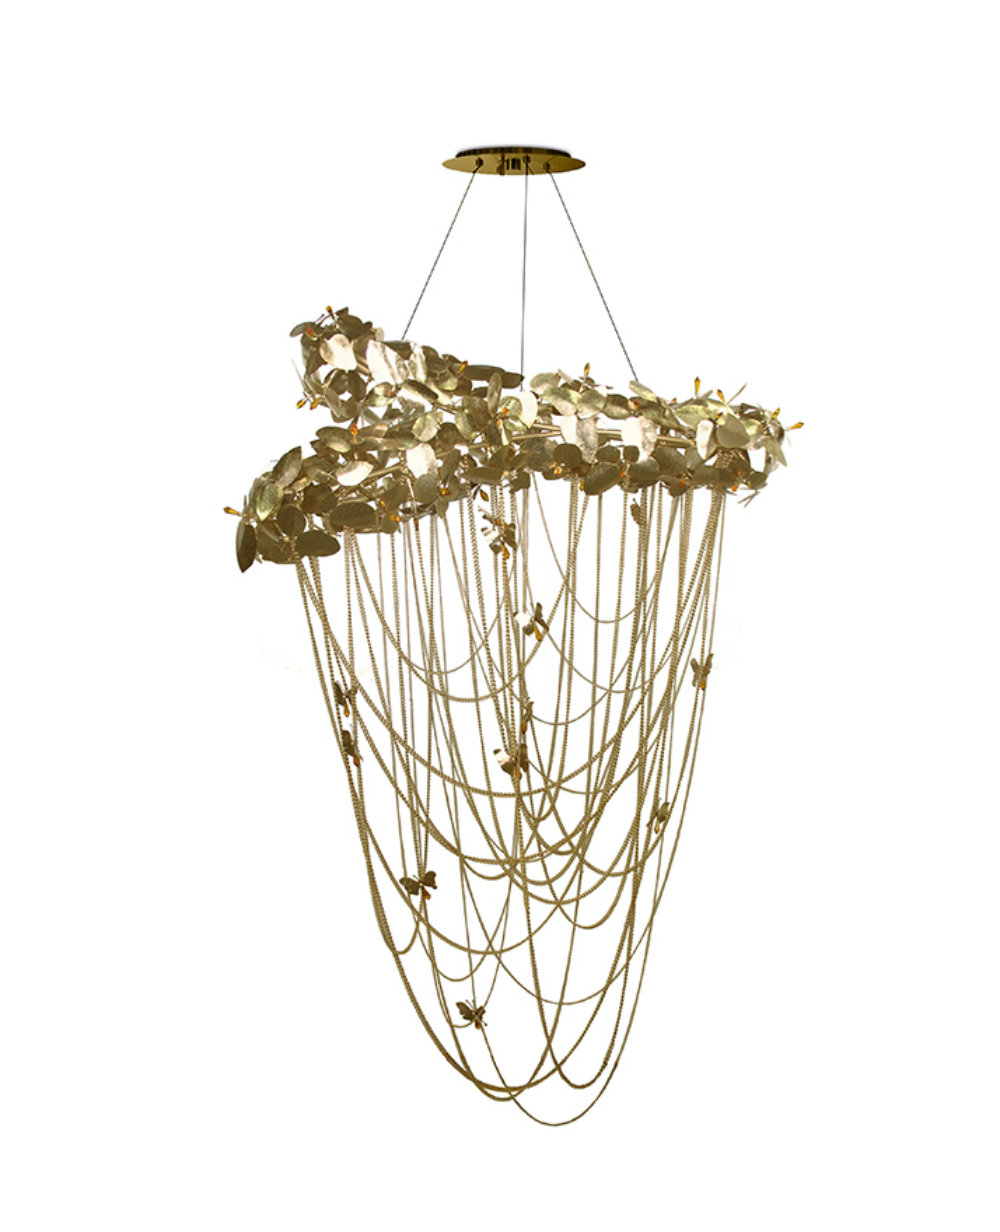 Lighting Inspiration: Meet The MCQueen Collection